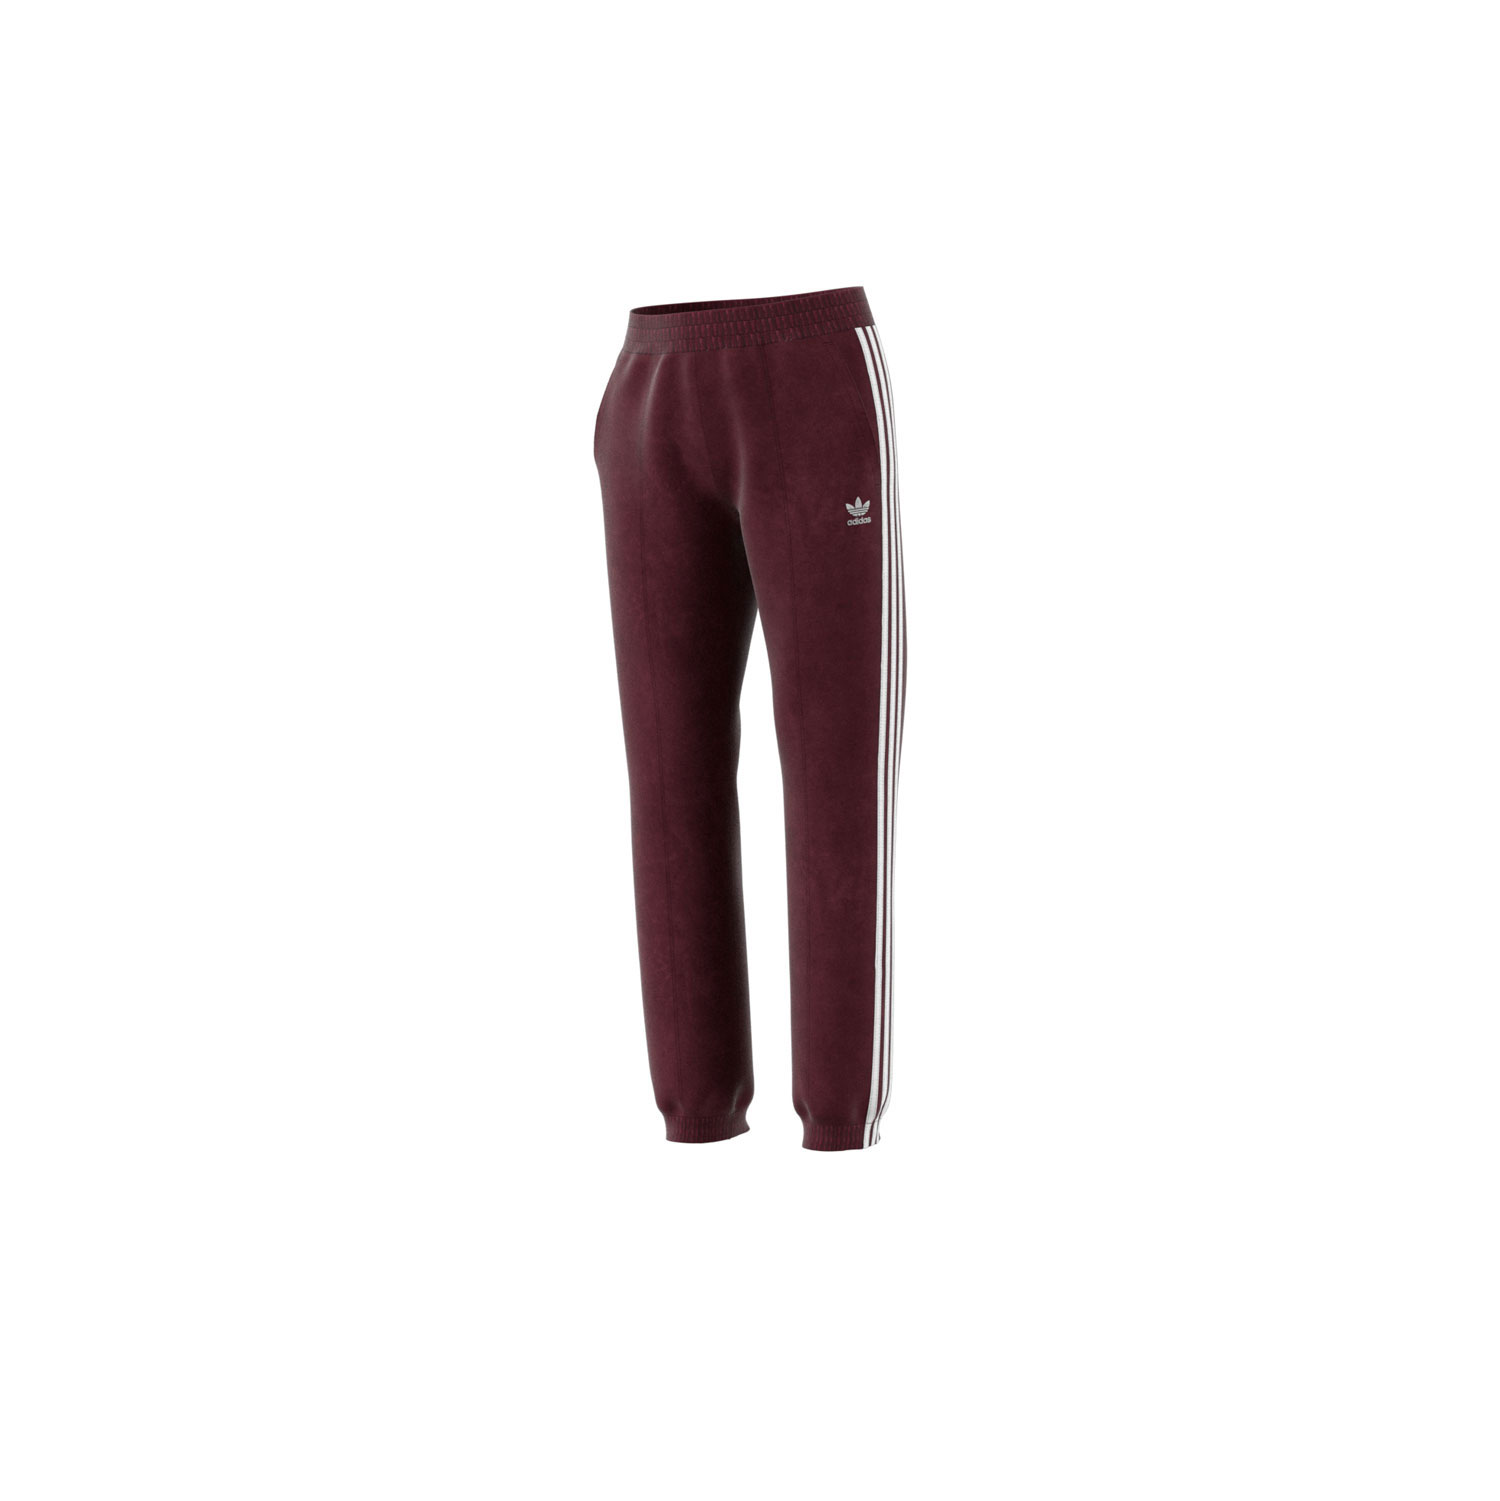 Details about Adidas Originals 3-Stripes Women's Cuffed Velour Jogger Pants  Maroon dh3114